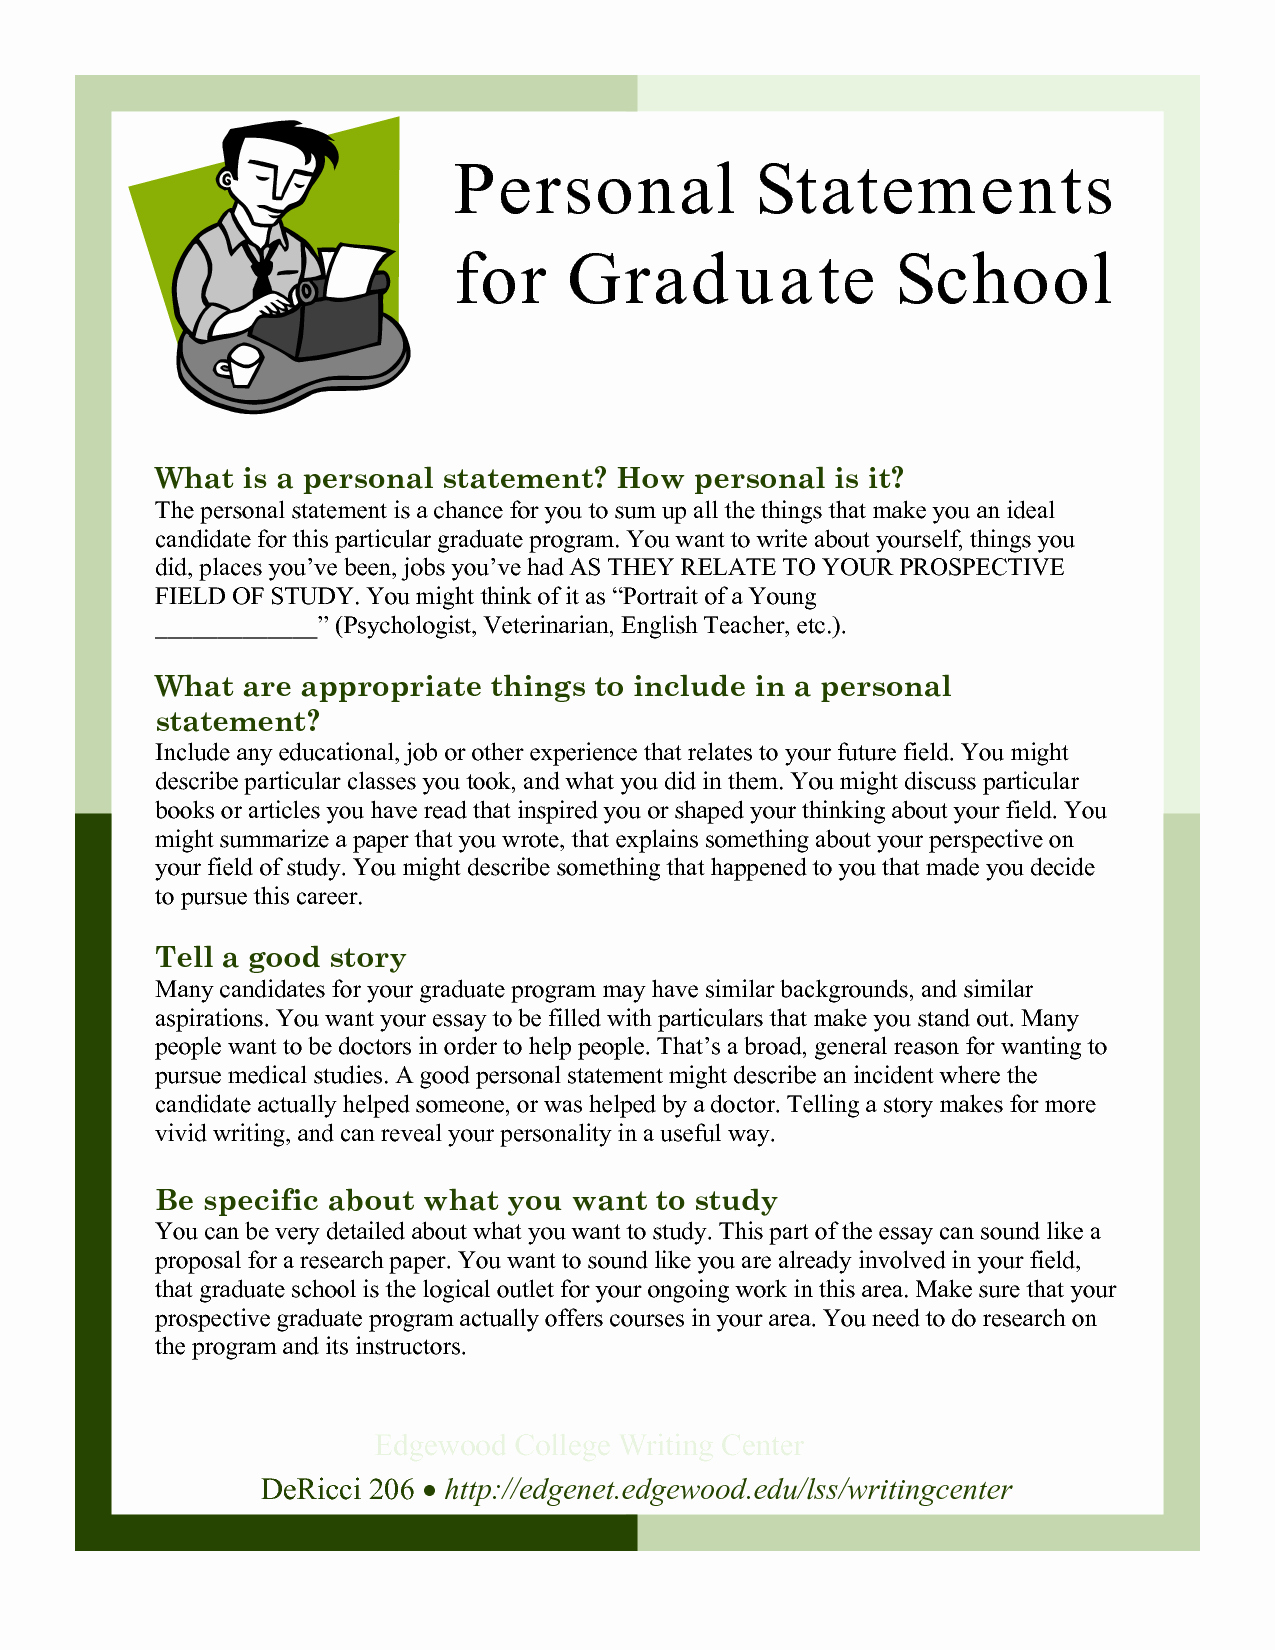 Personal Statement Template for College Awesome Buy Essays Line How to Get to Best Essays for Your